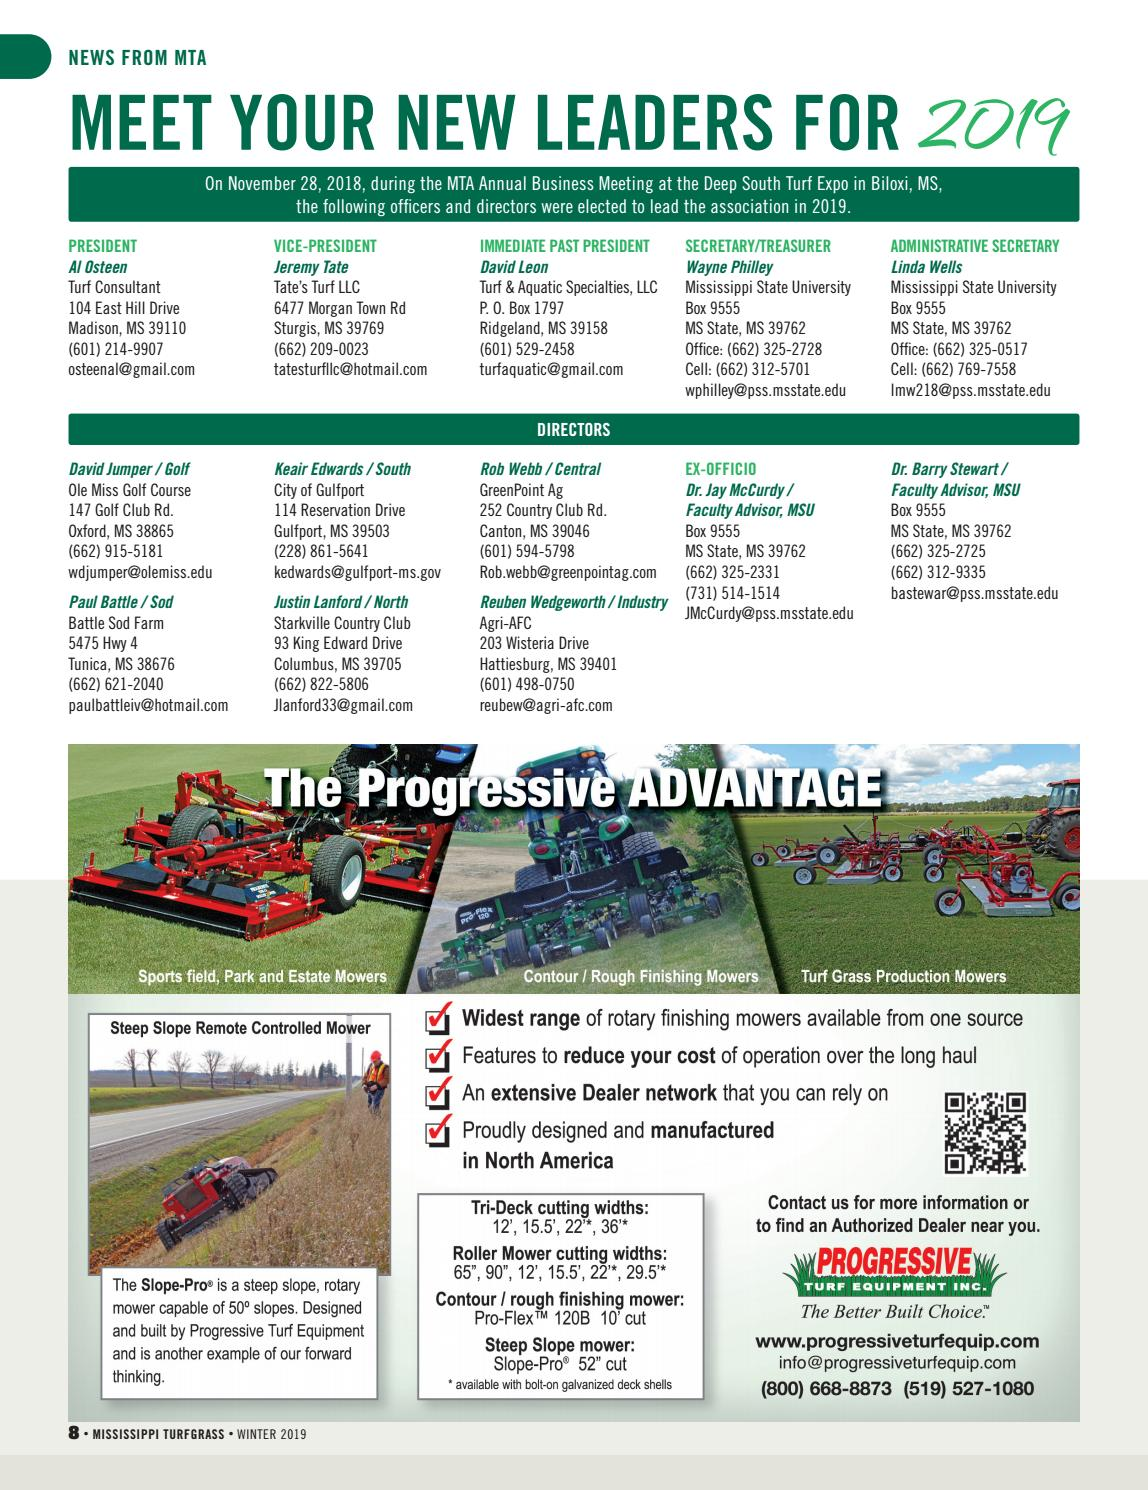 mississippi turfgrass winter 2019 by leadingedgepubs issuu mississippi turfgrass winter 2019 by